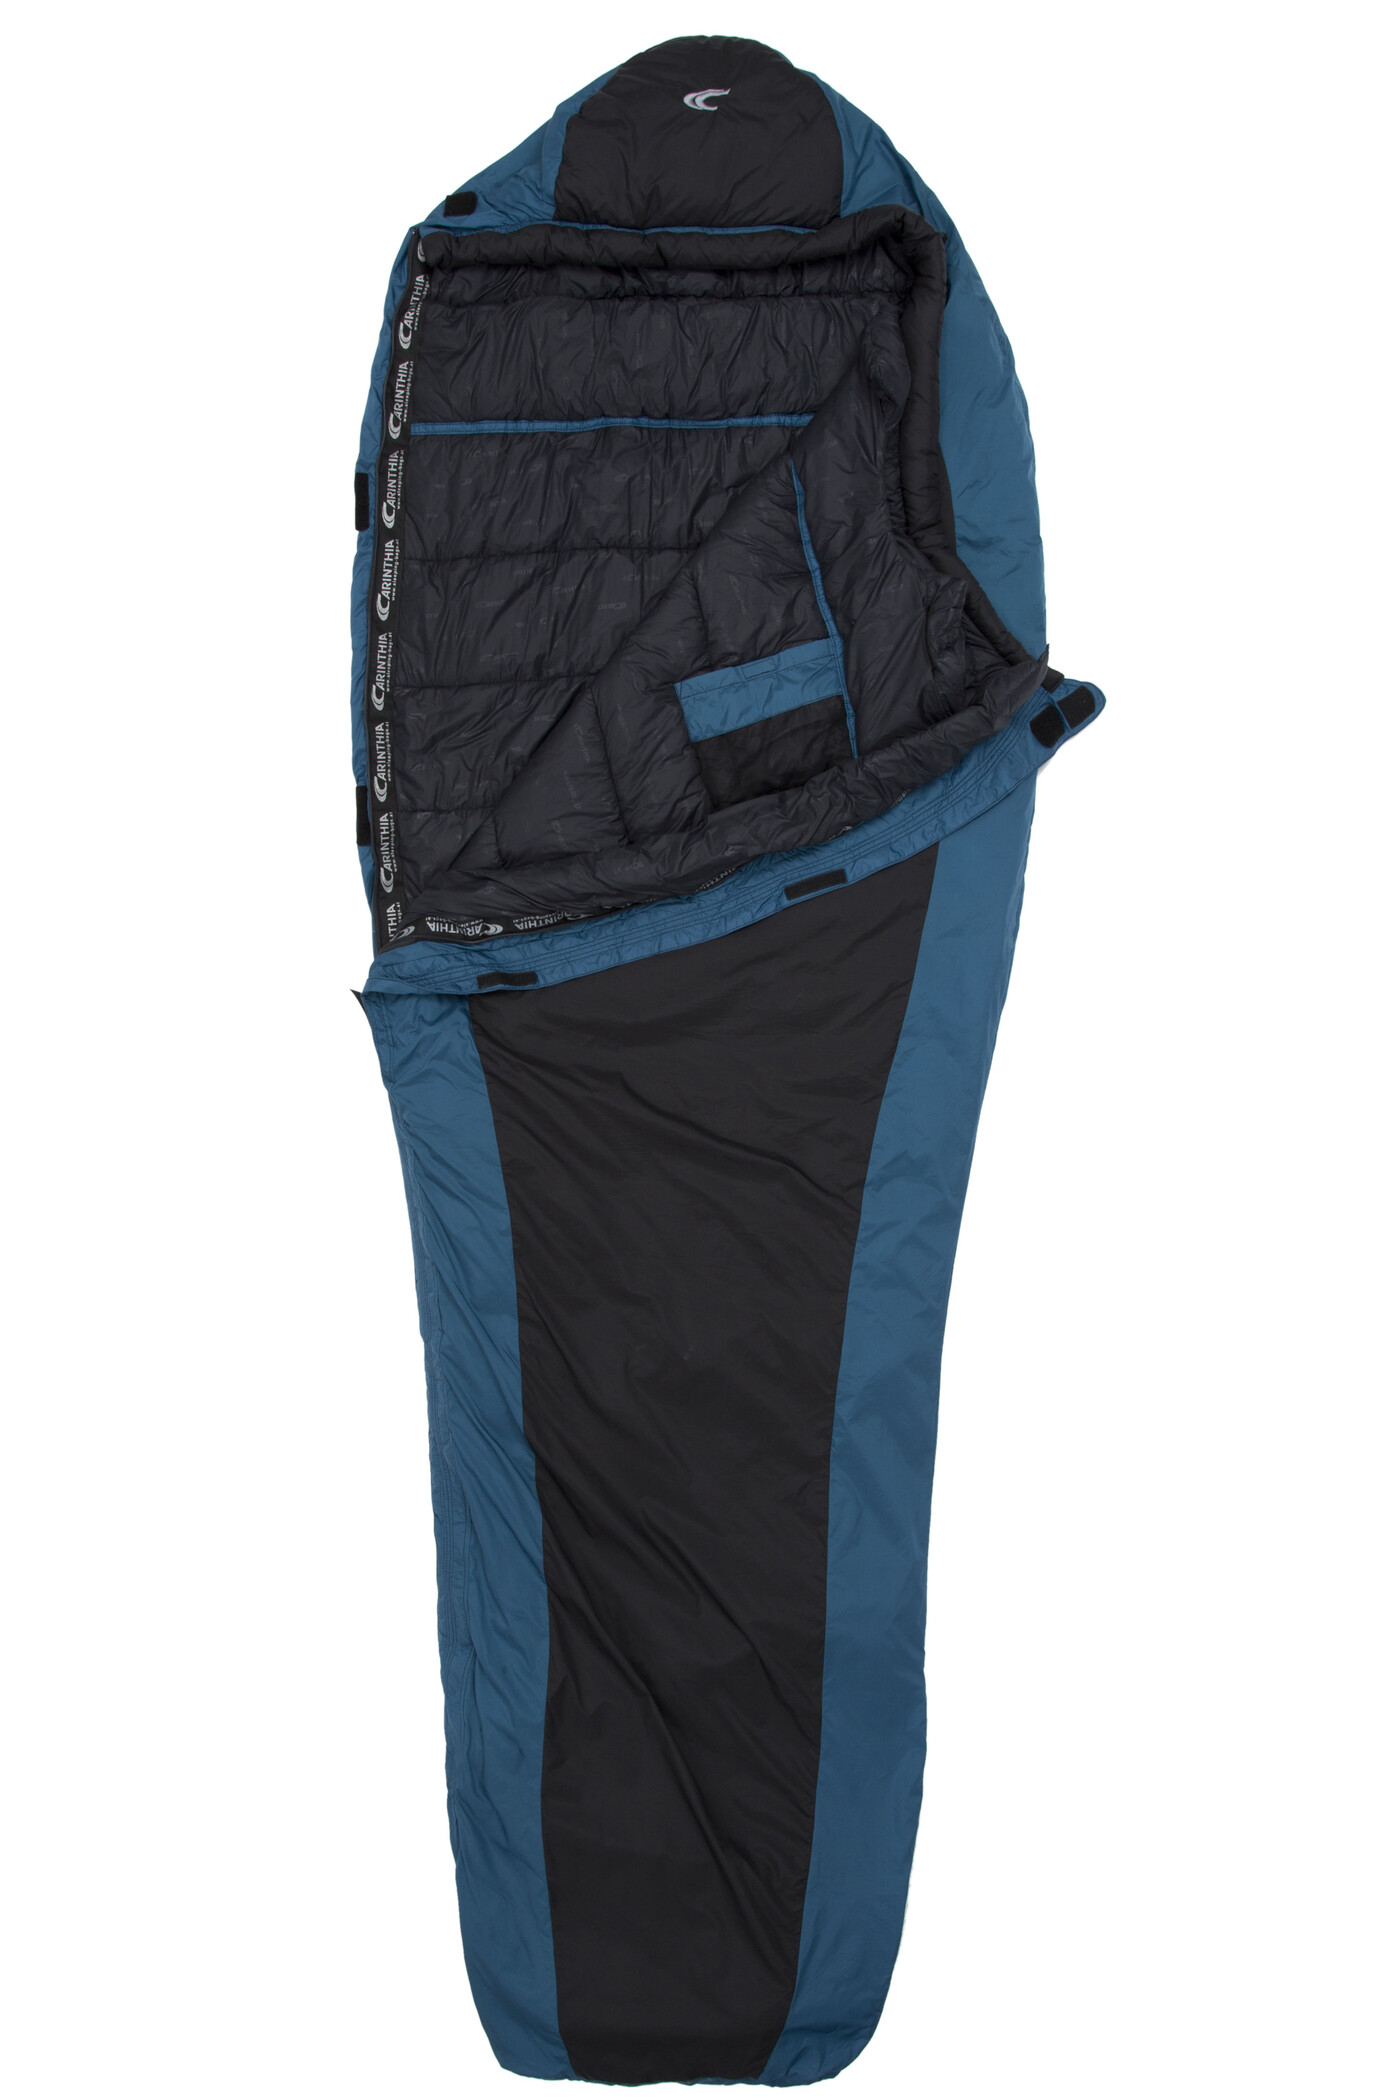 Carinthia Lite 850 Large blue/black